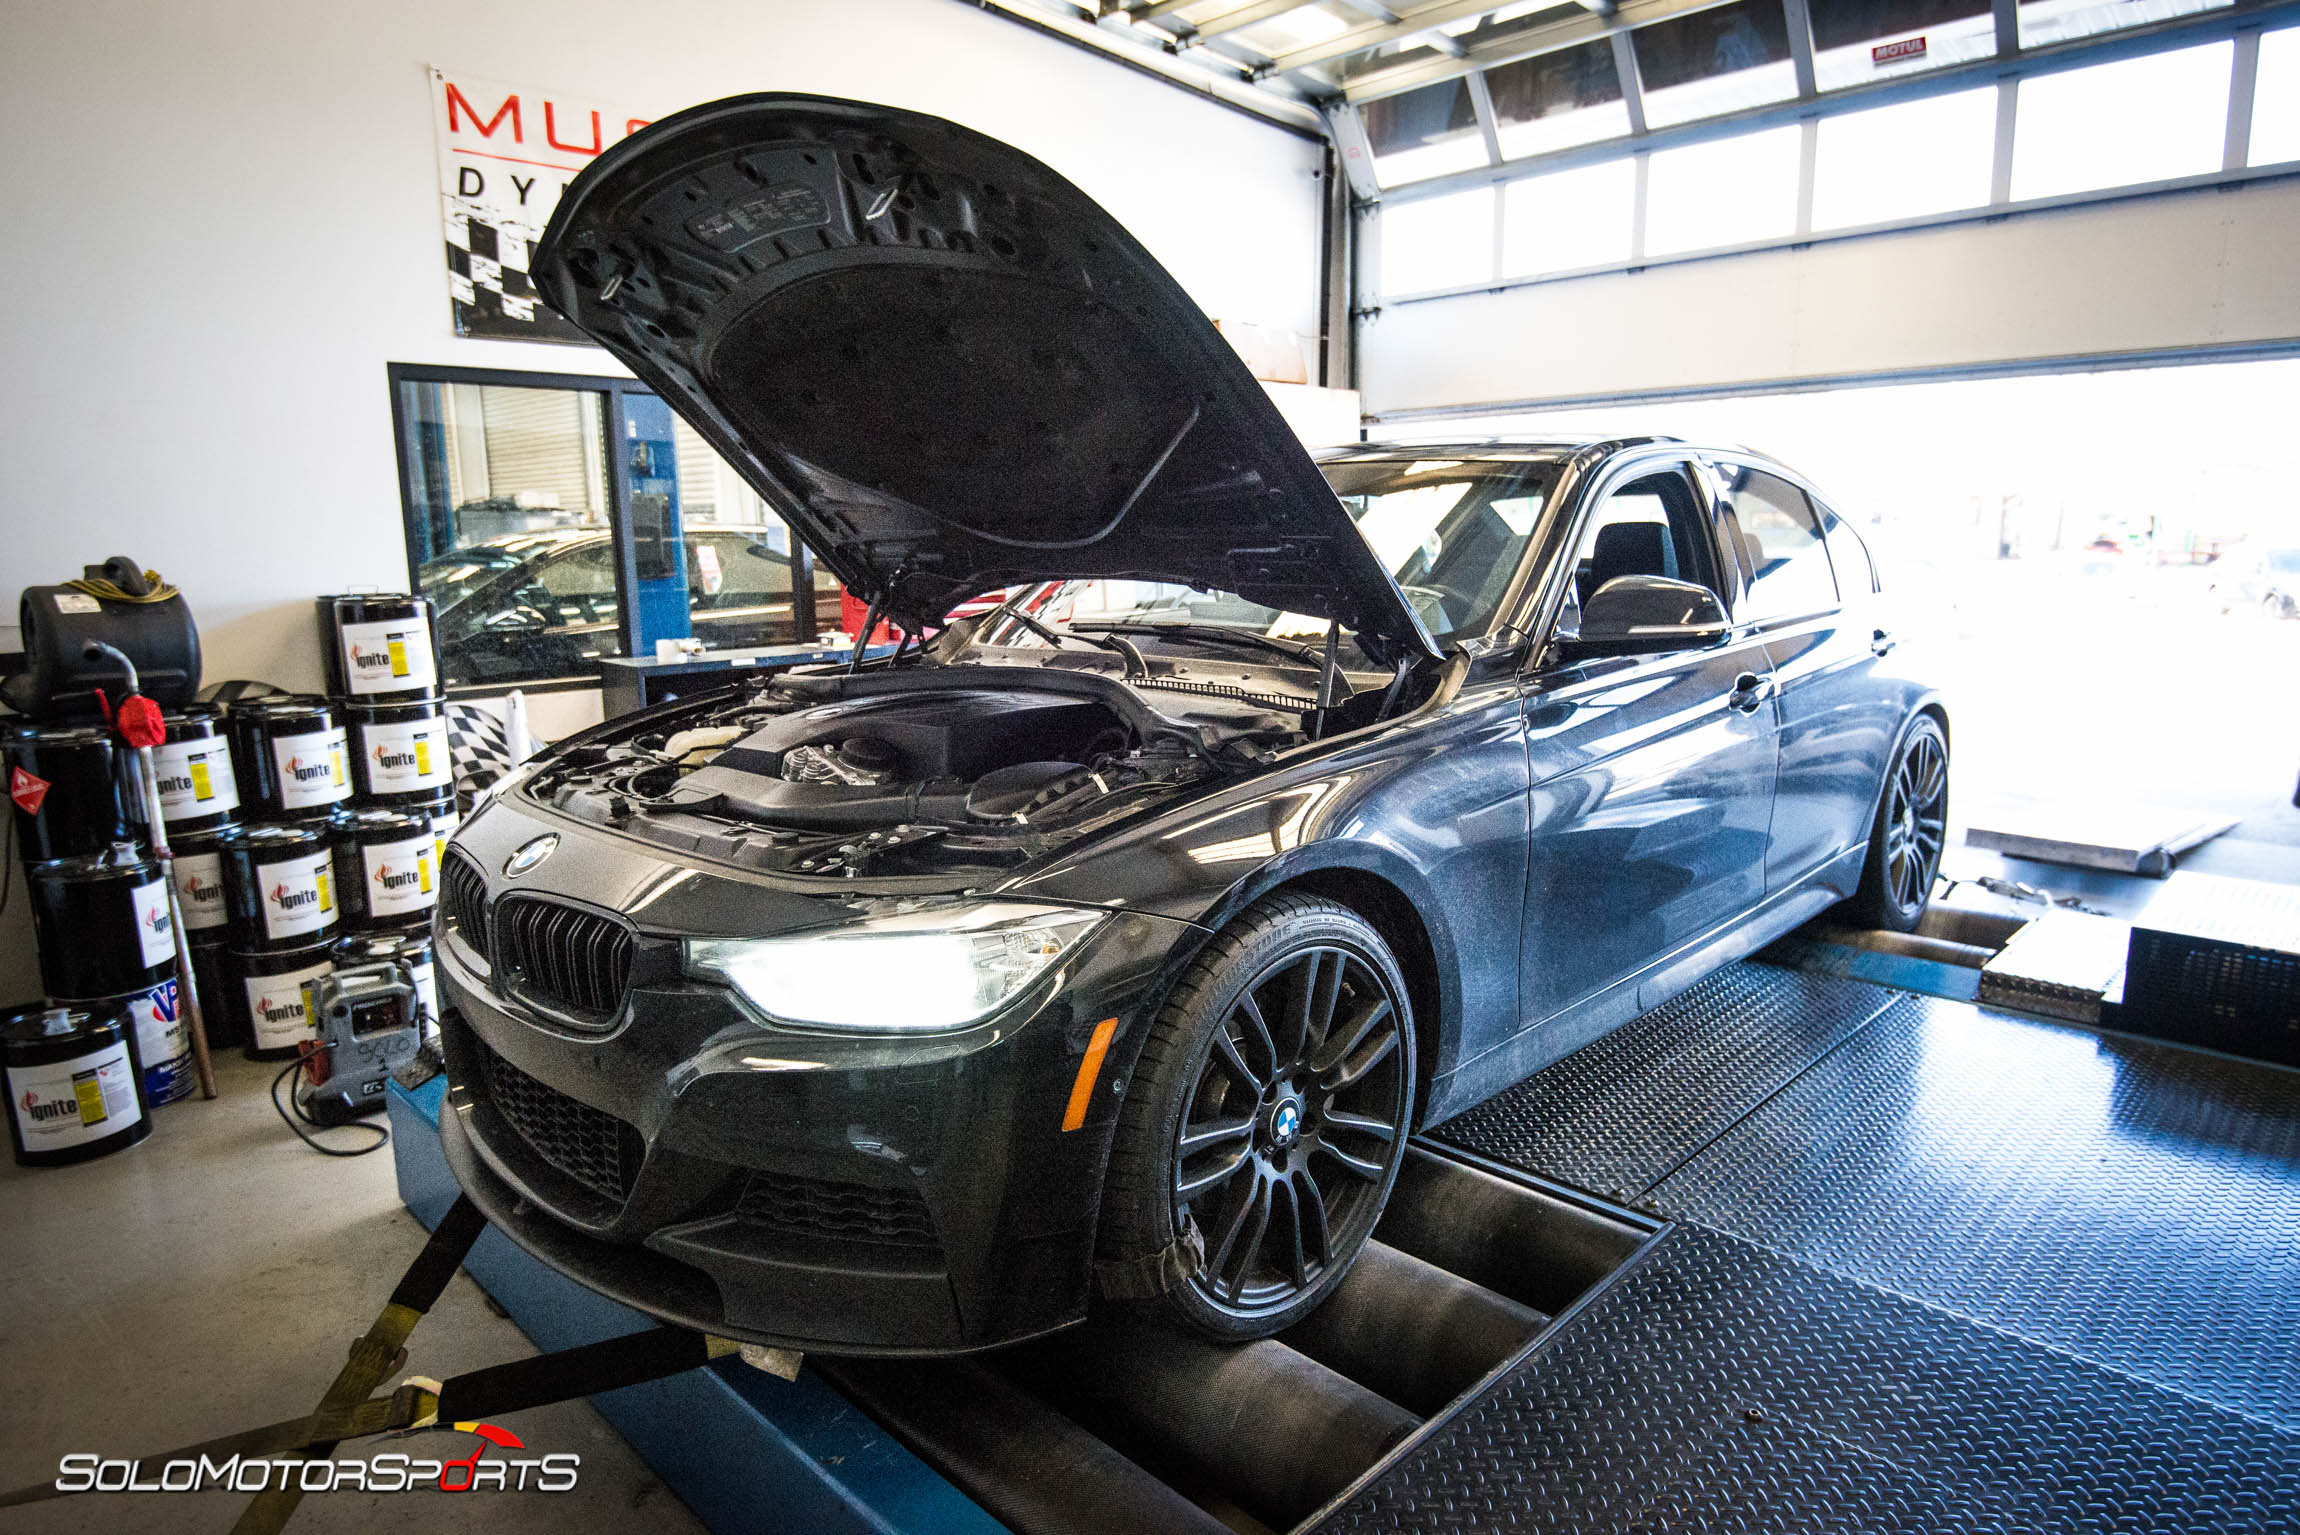 bmw f30 335i turbo custom tuning atlanta bmw performance mtechnik mperformance mcars bimmer custom tuning dynotuning dyno dynometer daily driving